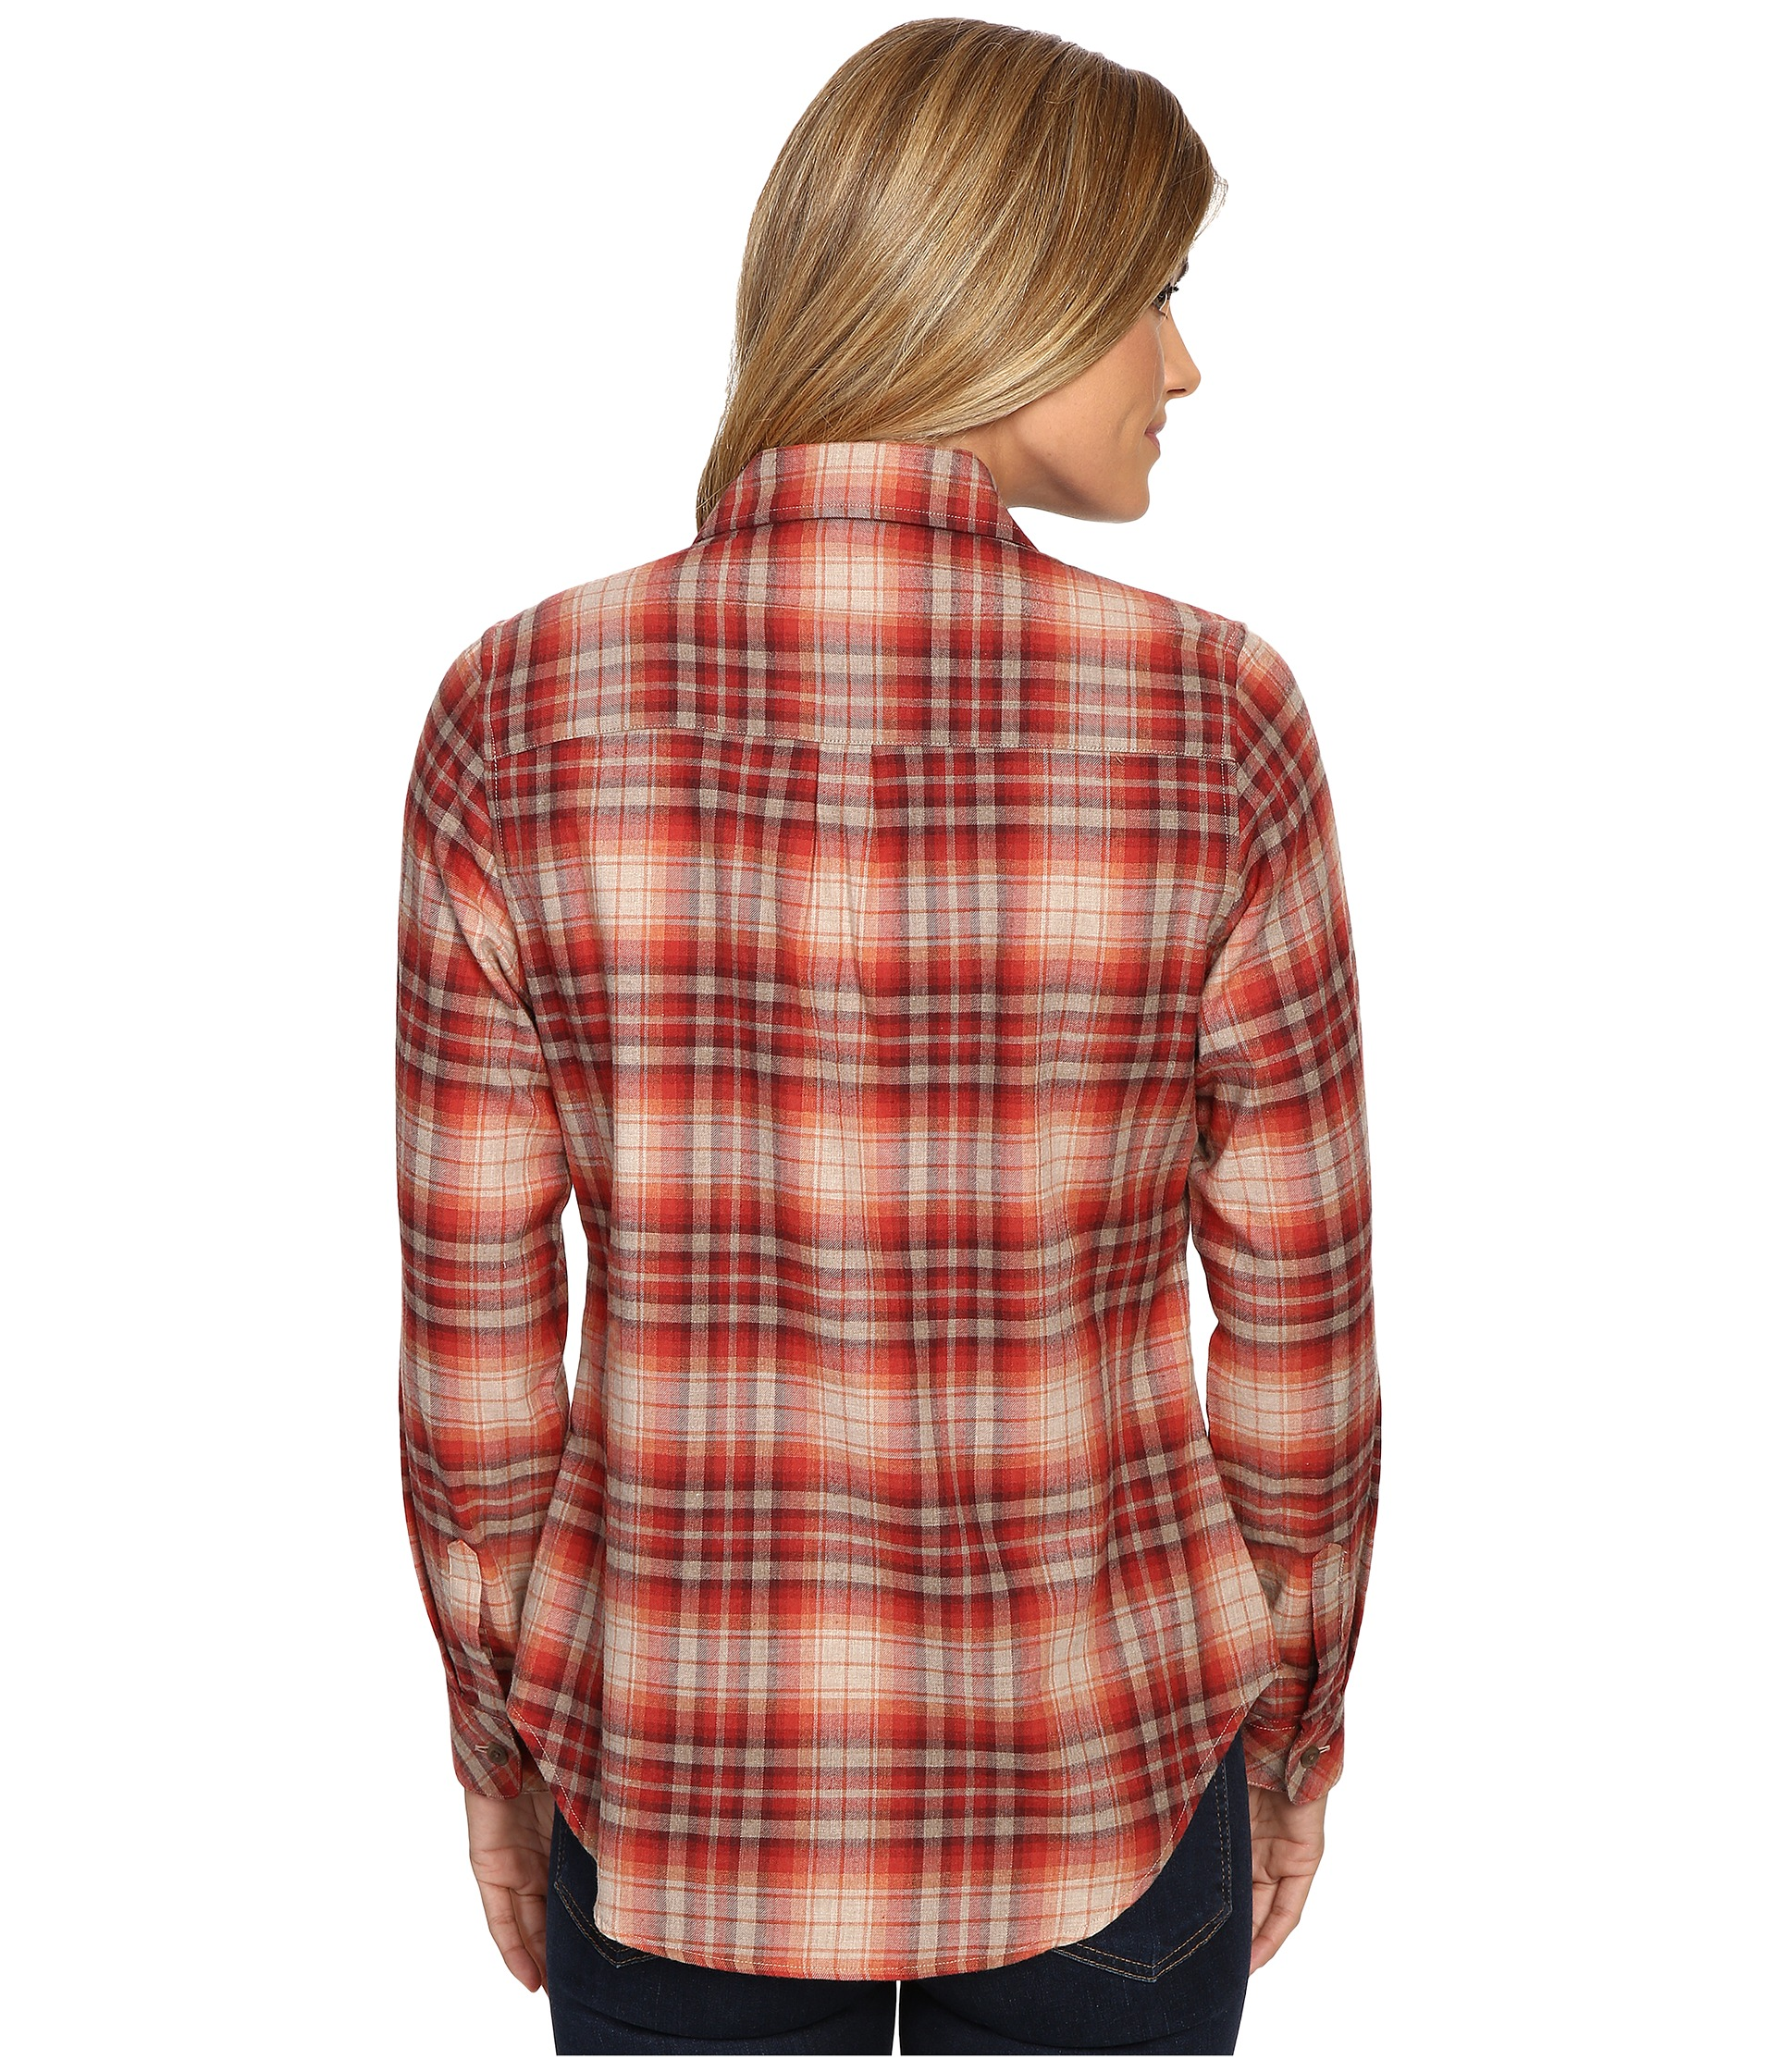 Pendleton frankie flannel shirt rosewood heather plaid for Athletic cut flannel shirts